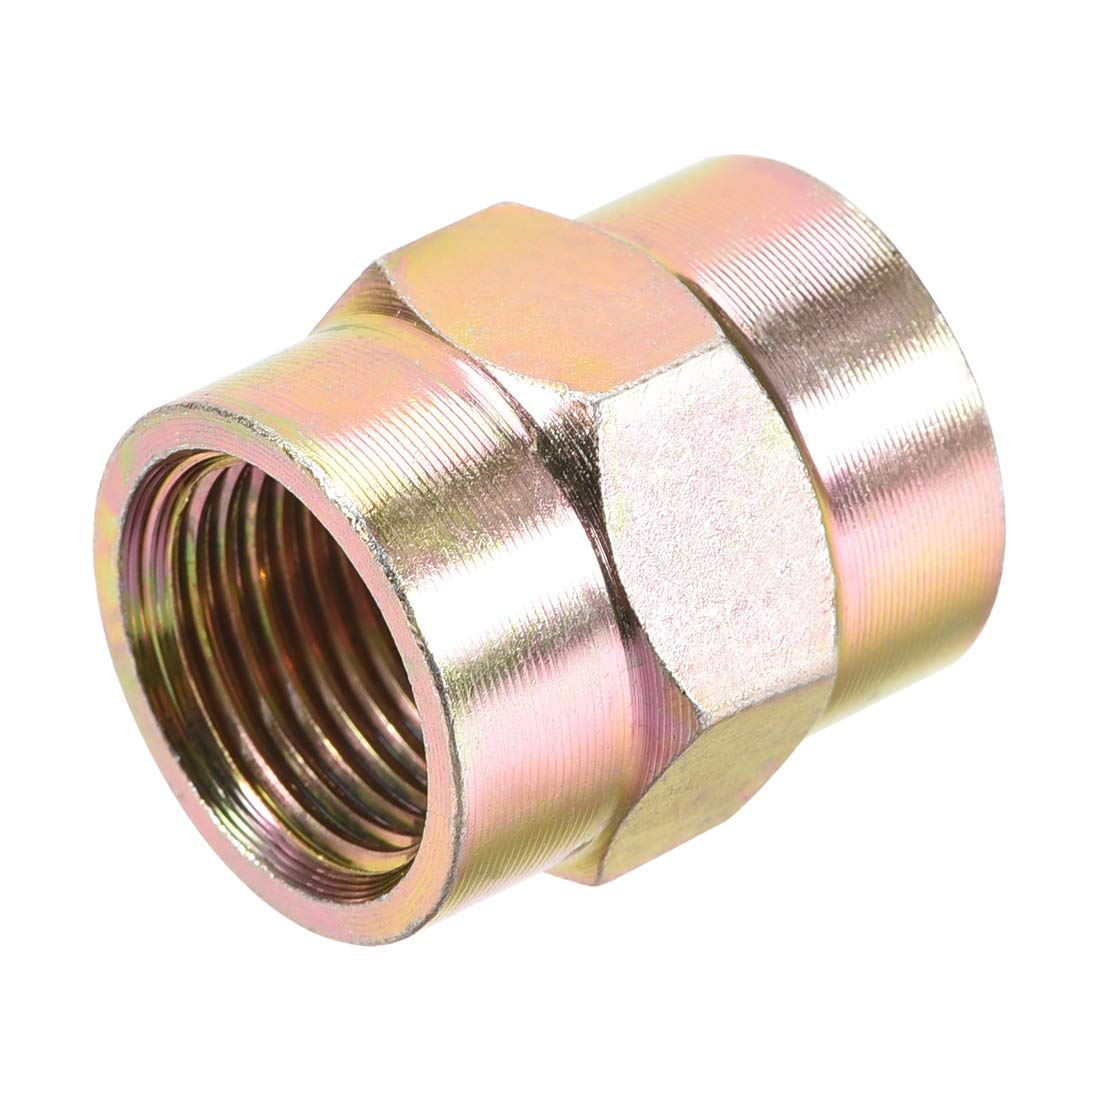 uxcell Pipe Fitting Connector Straight Hex Nipple Coupling 3//8 PT Female Thread Hydraulic Adapter 10pcs